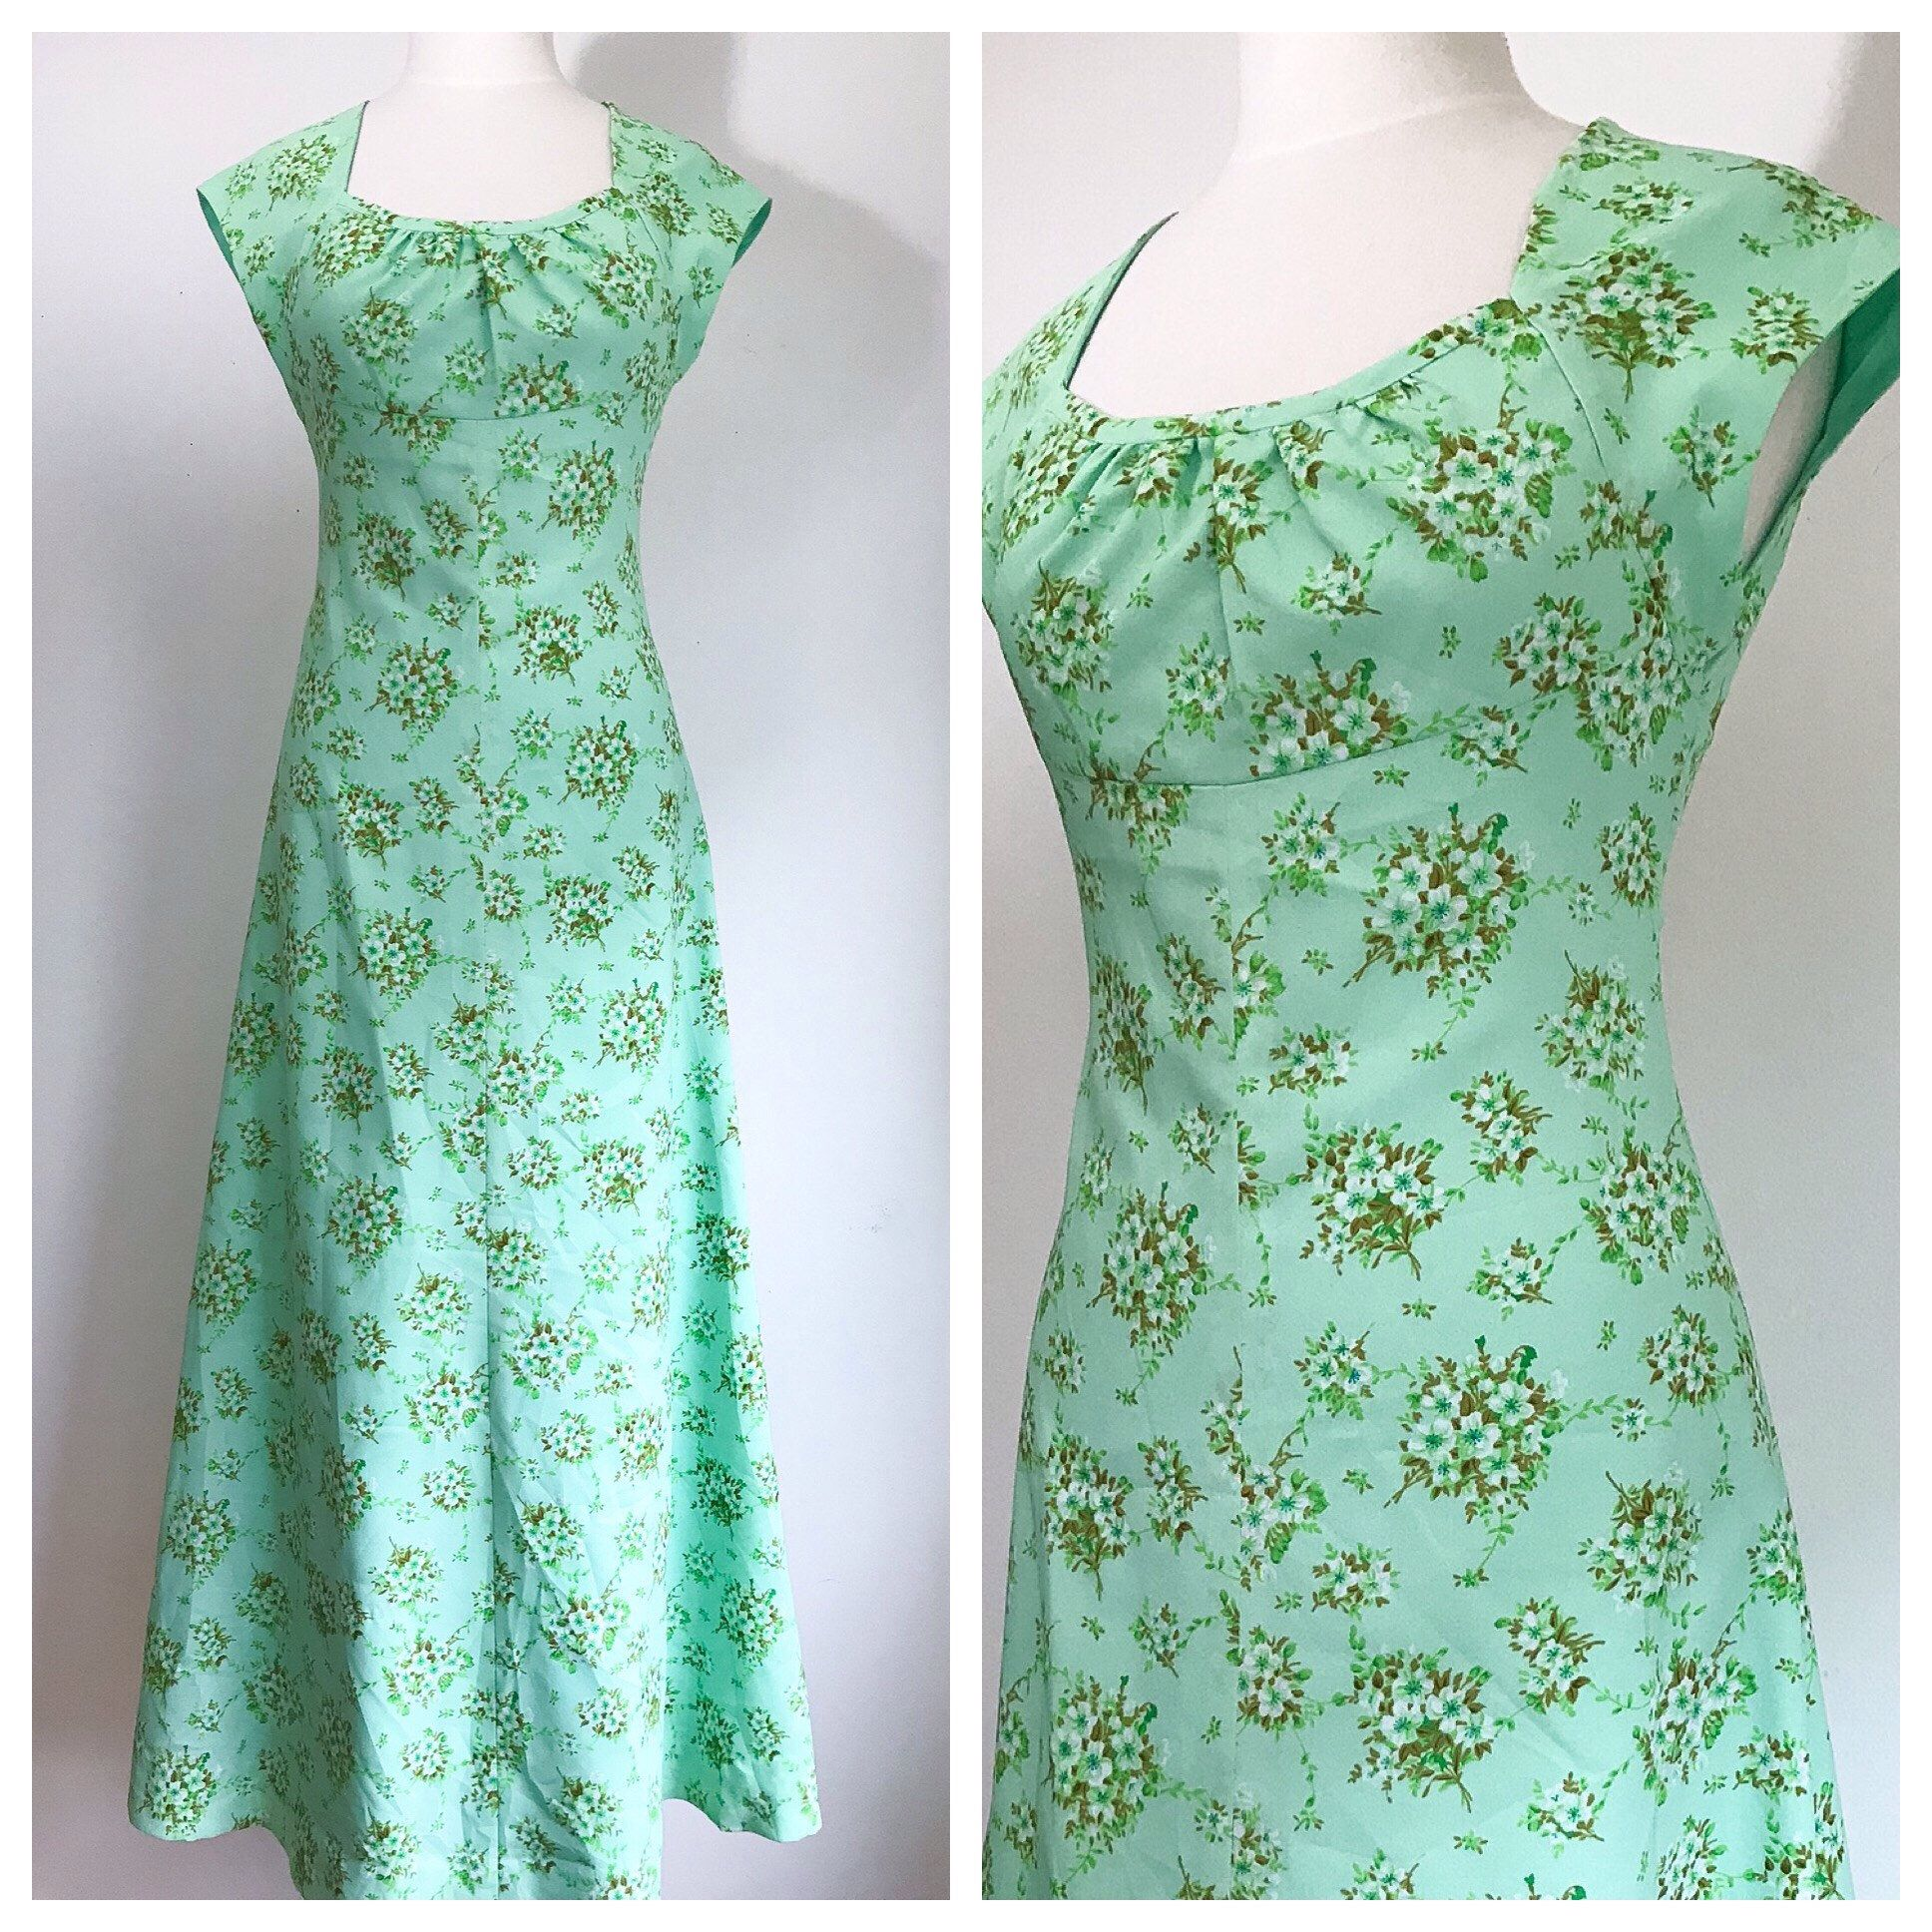 Vintage Dress. 1960's Mint Green White And Brown Floral